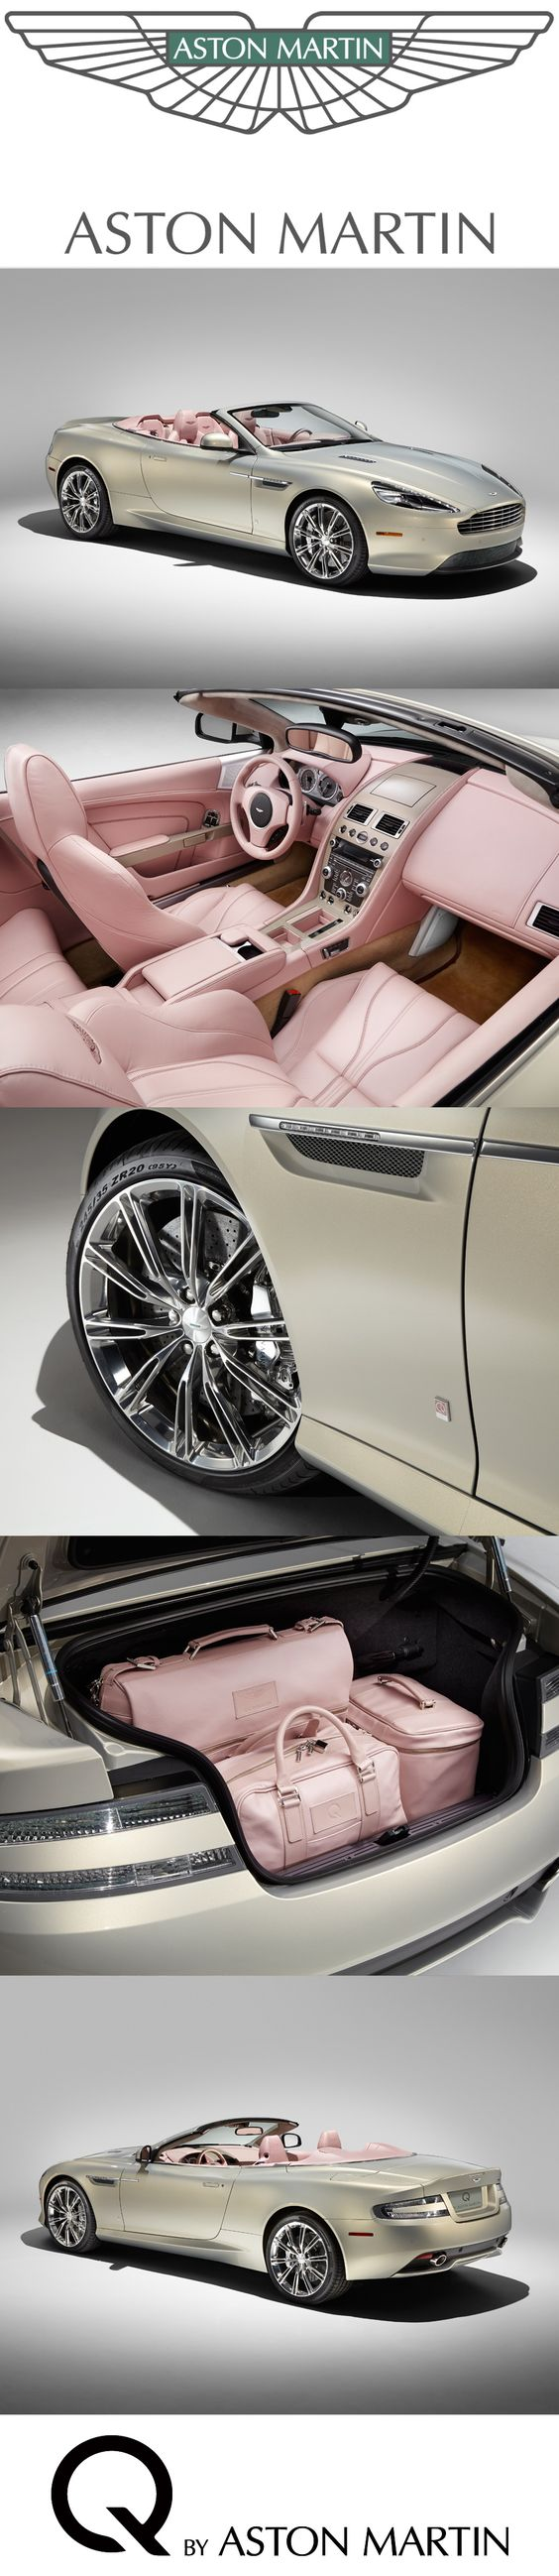 A bespoke commission to be showcased at Pebble Beach® Automotive Week 2014. For more please visit: http://www.flyfreshforever.com